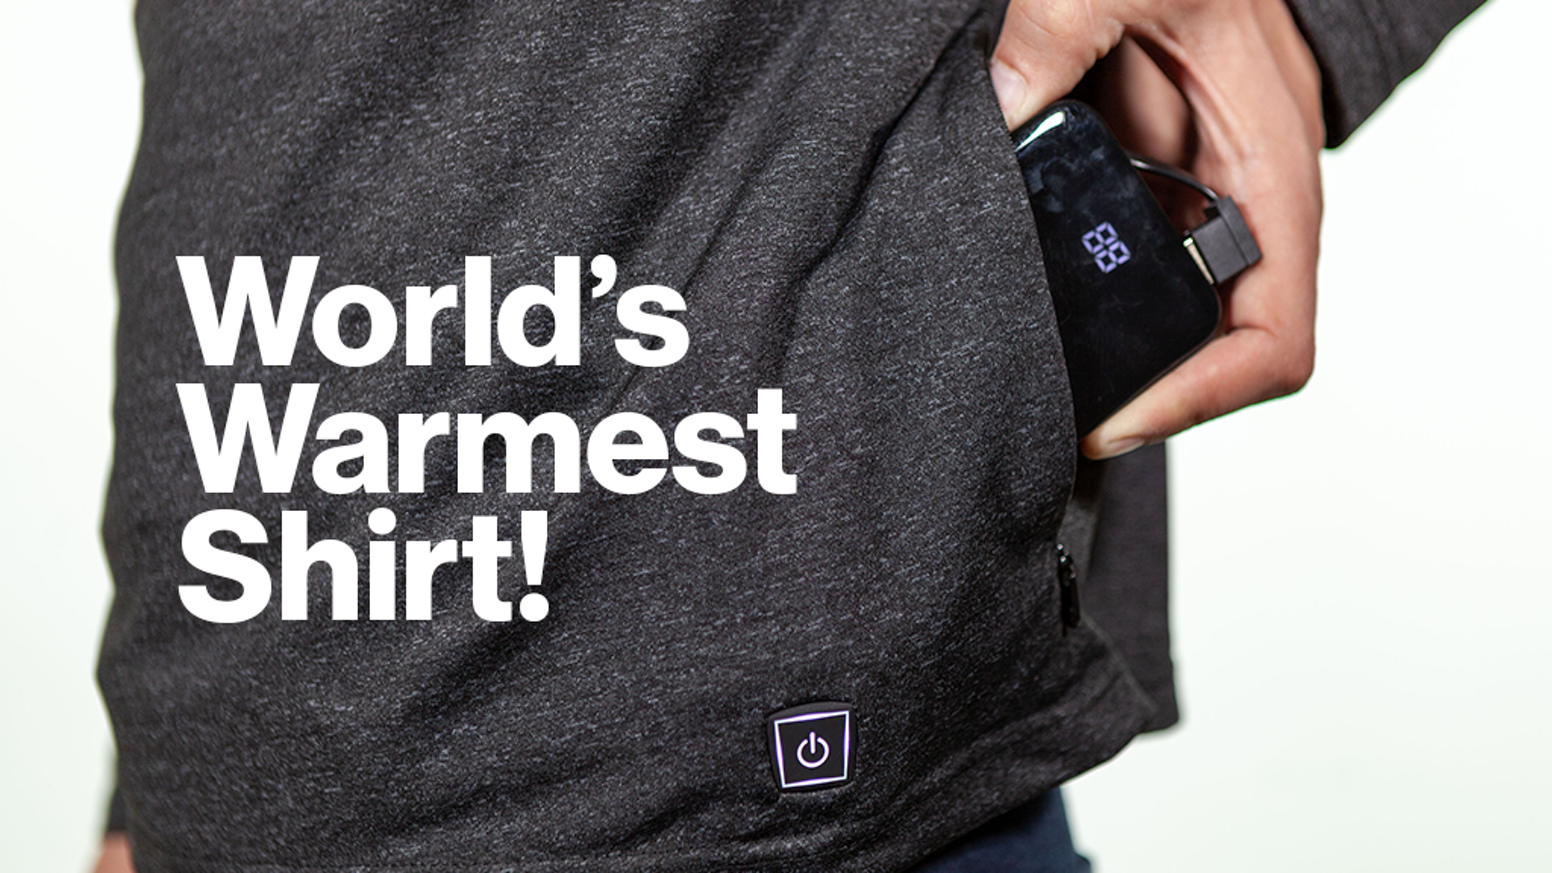 Heated shirt powered by a lightweight battery. Bring warmth with you wherever you go and forget worrying about how many layers to wear!